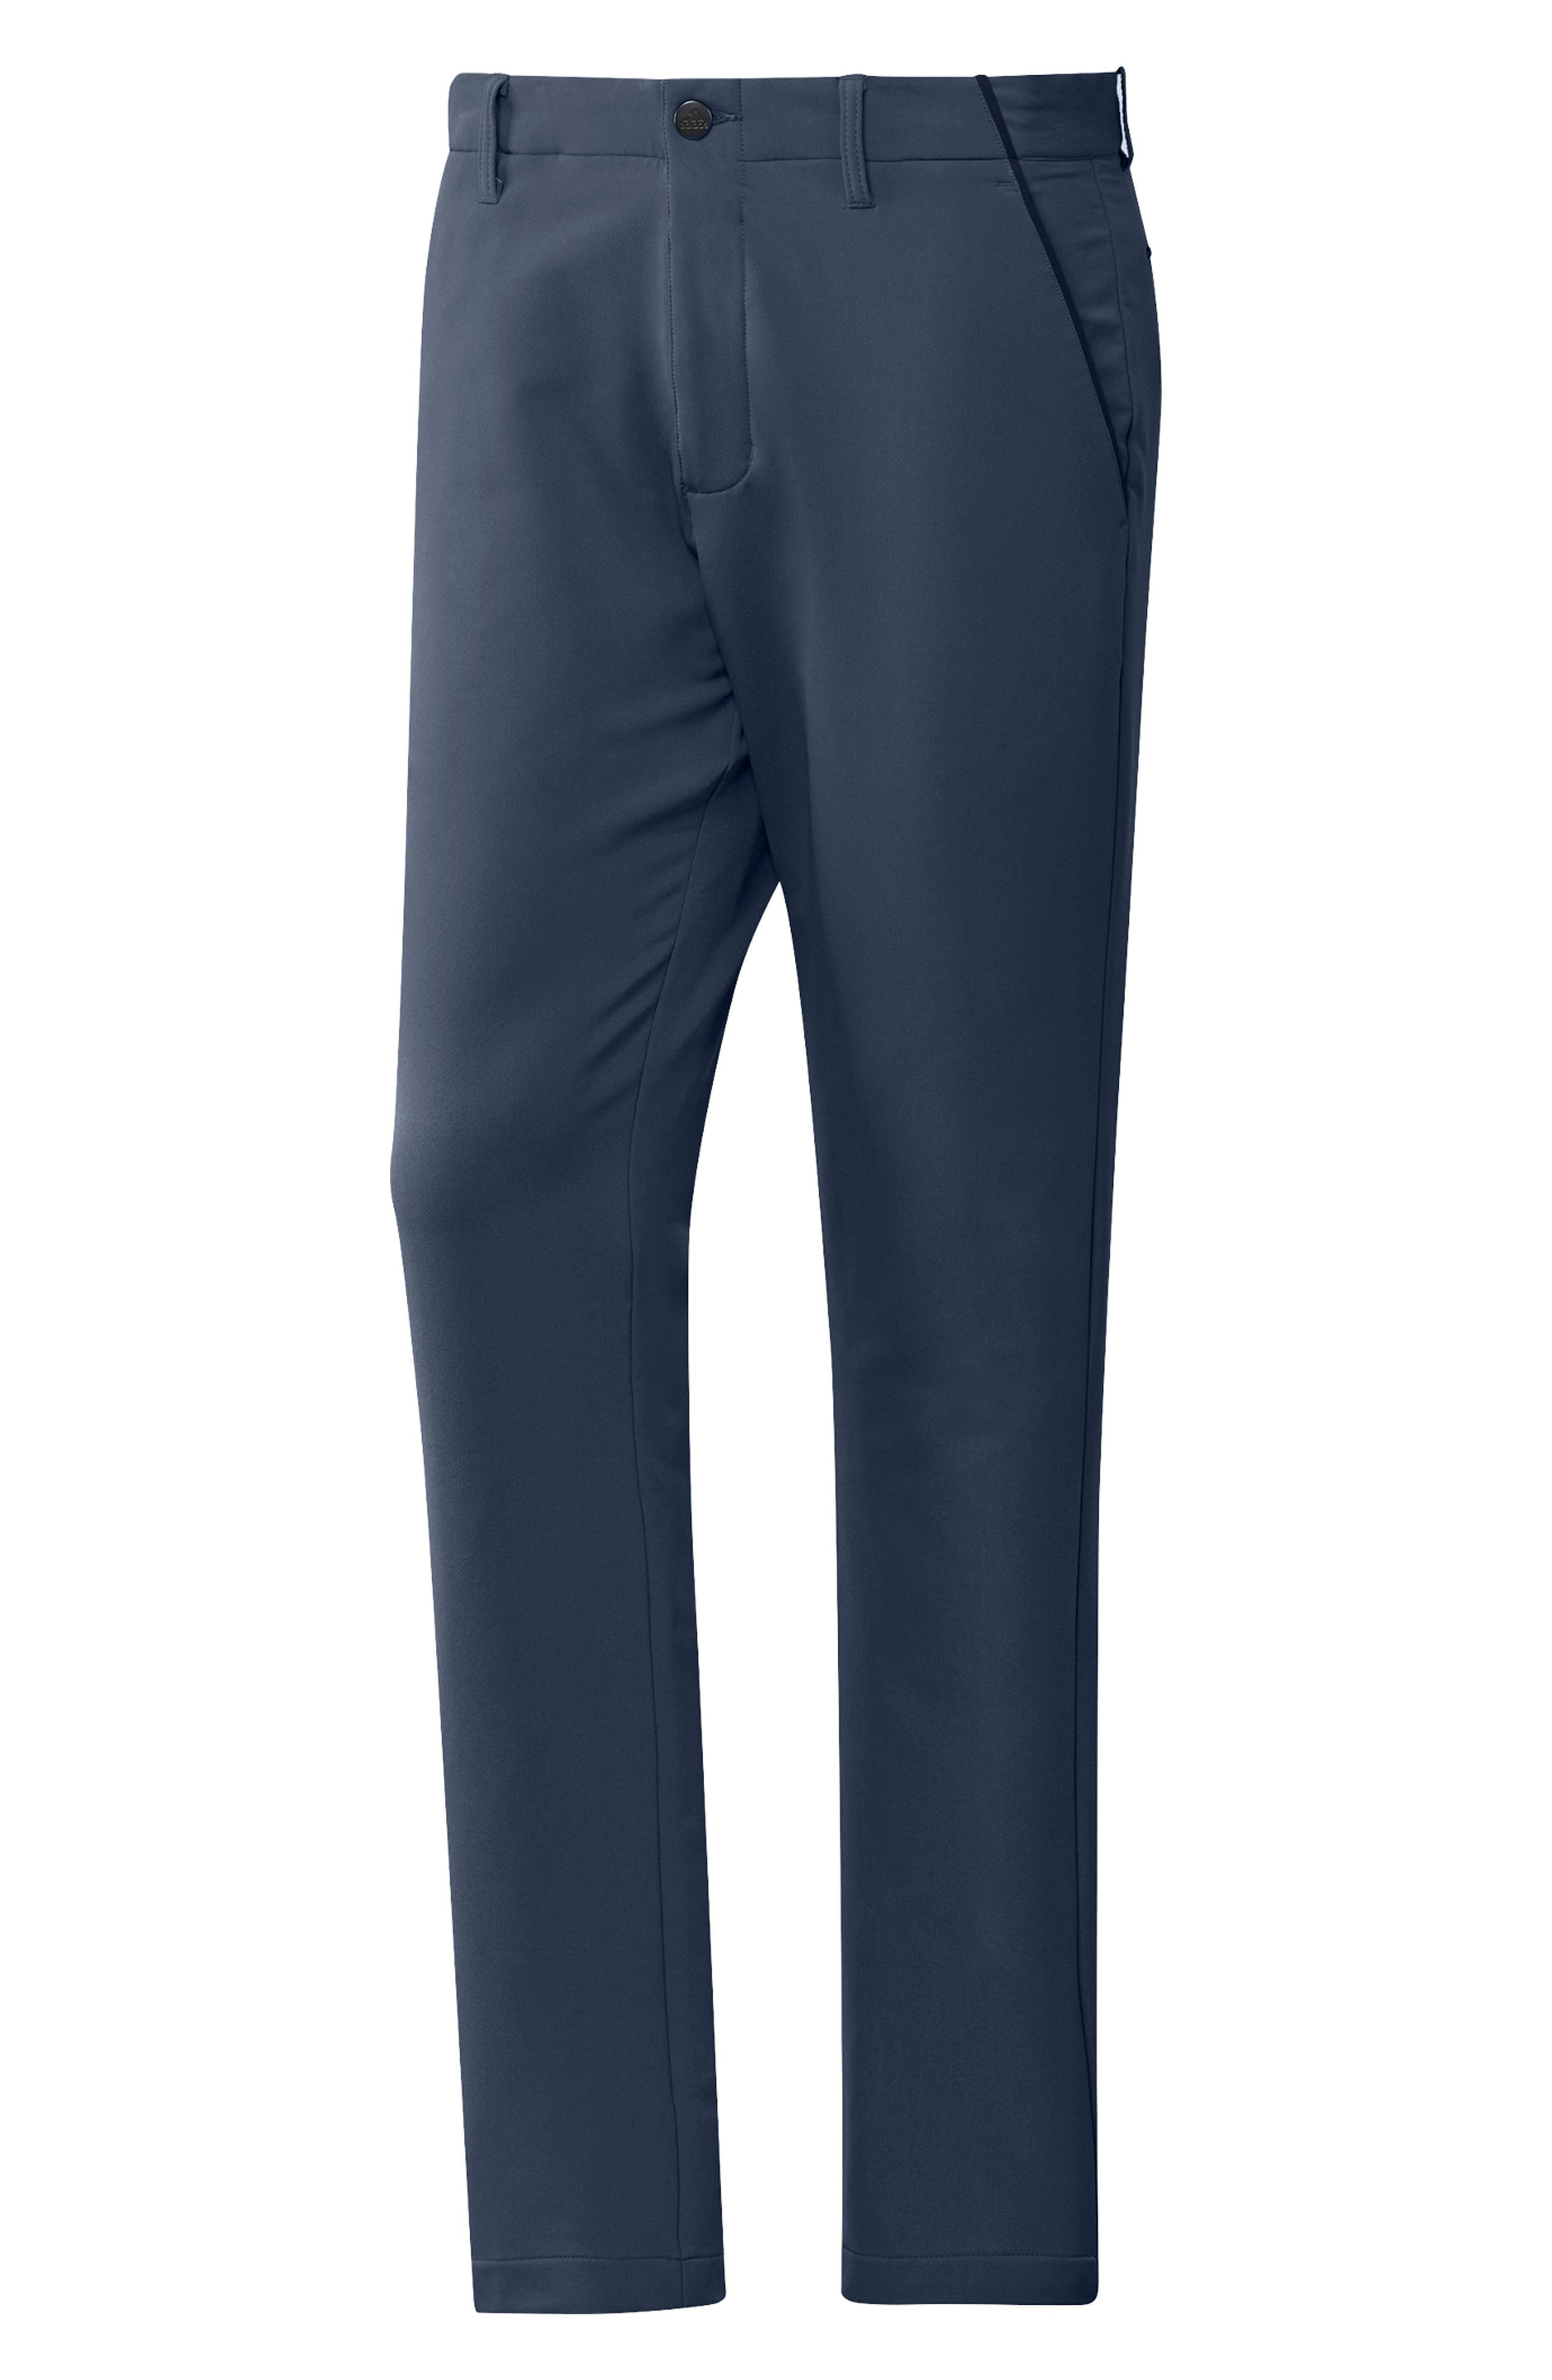 Men's Adidas Fall Weight Water Repellent Performance Golf Pants